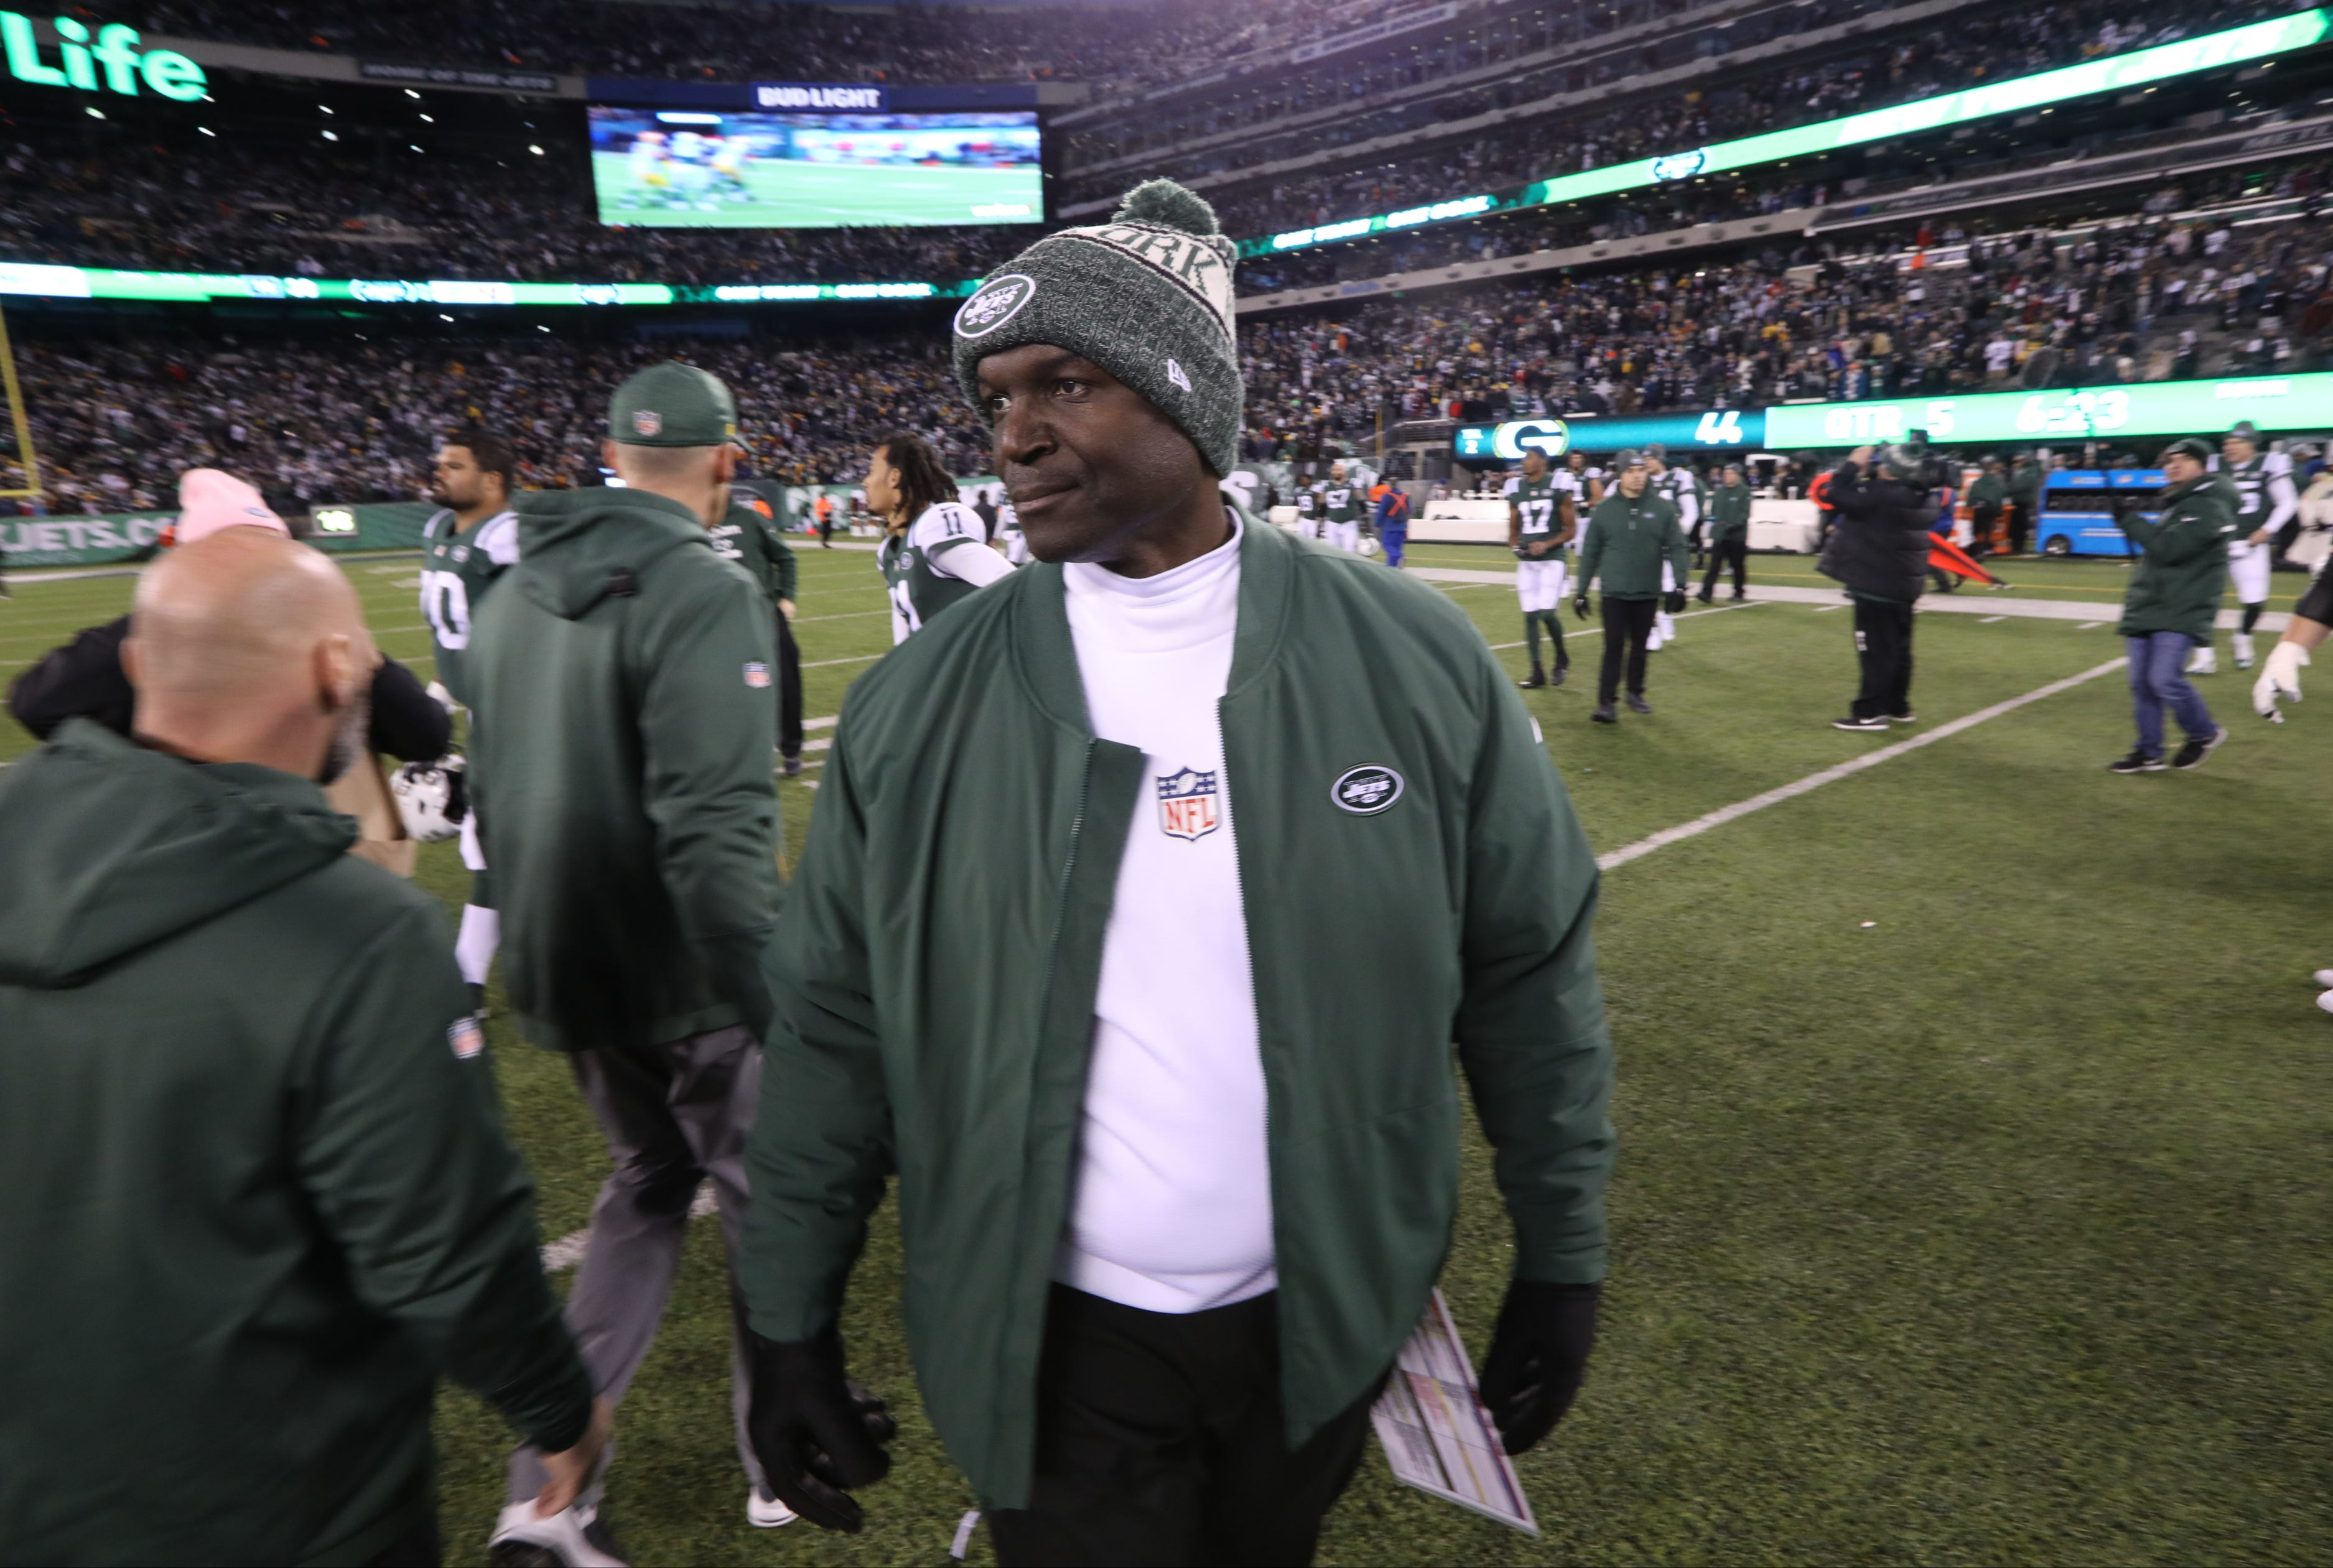 Jets' Todd Bowles rips refs after OT loss to Packers: 'Thought we were playing two teams'